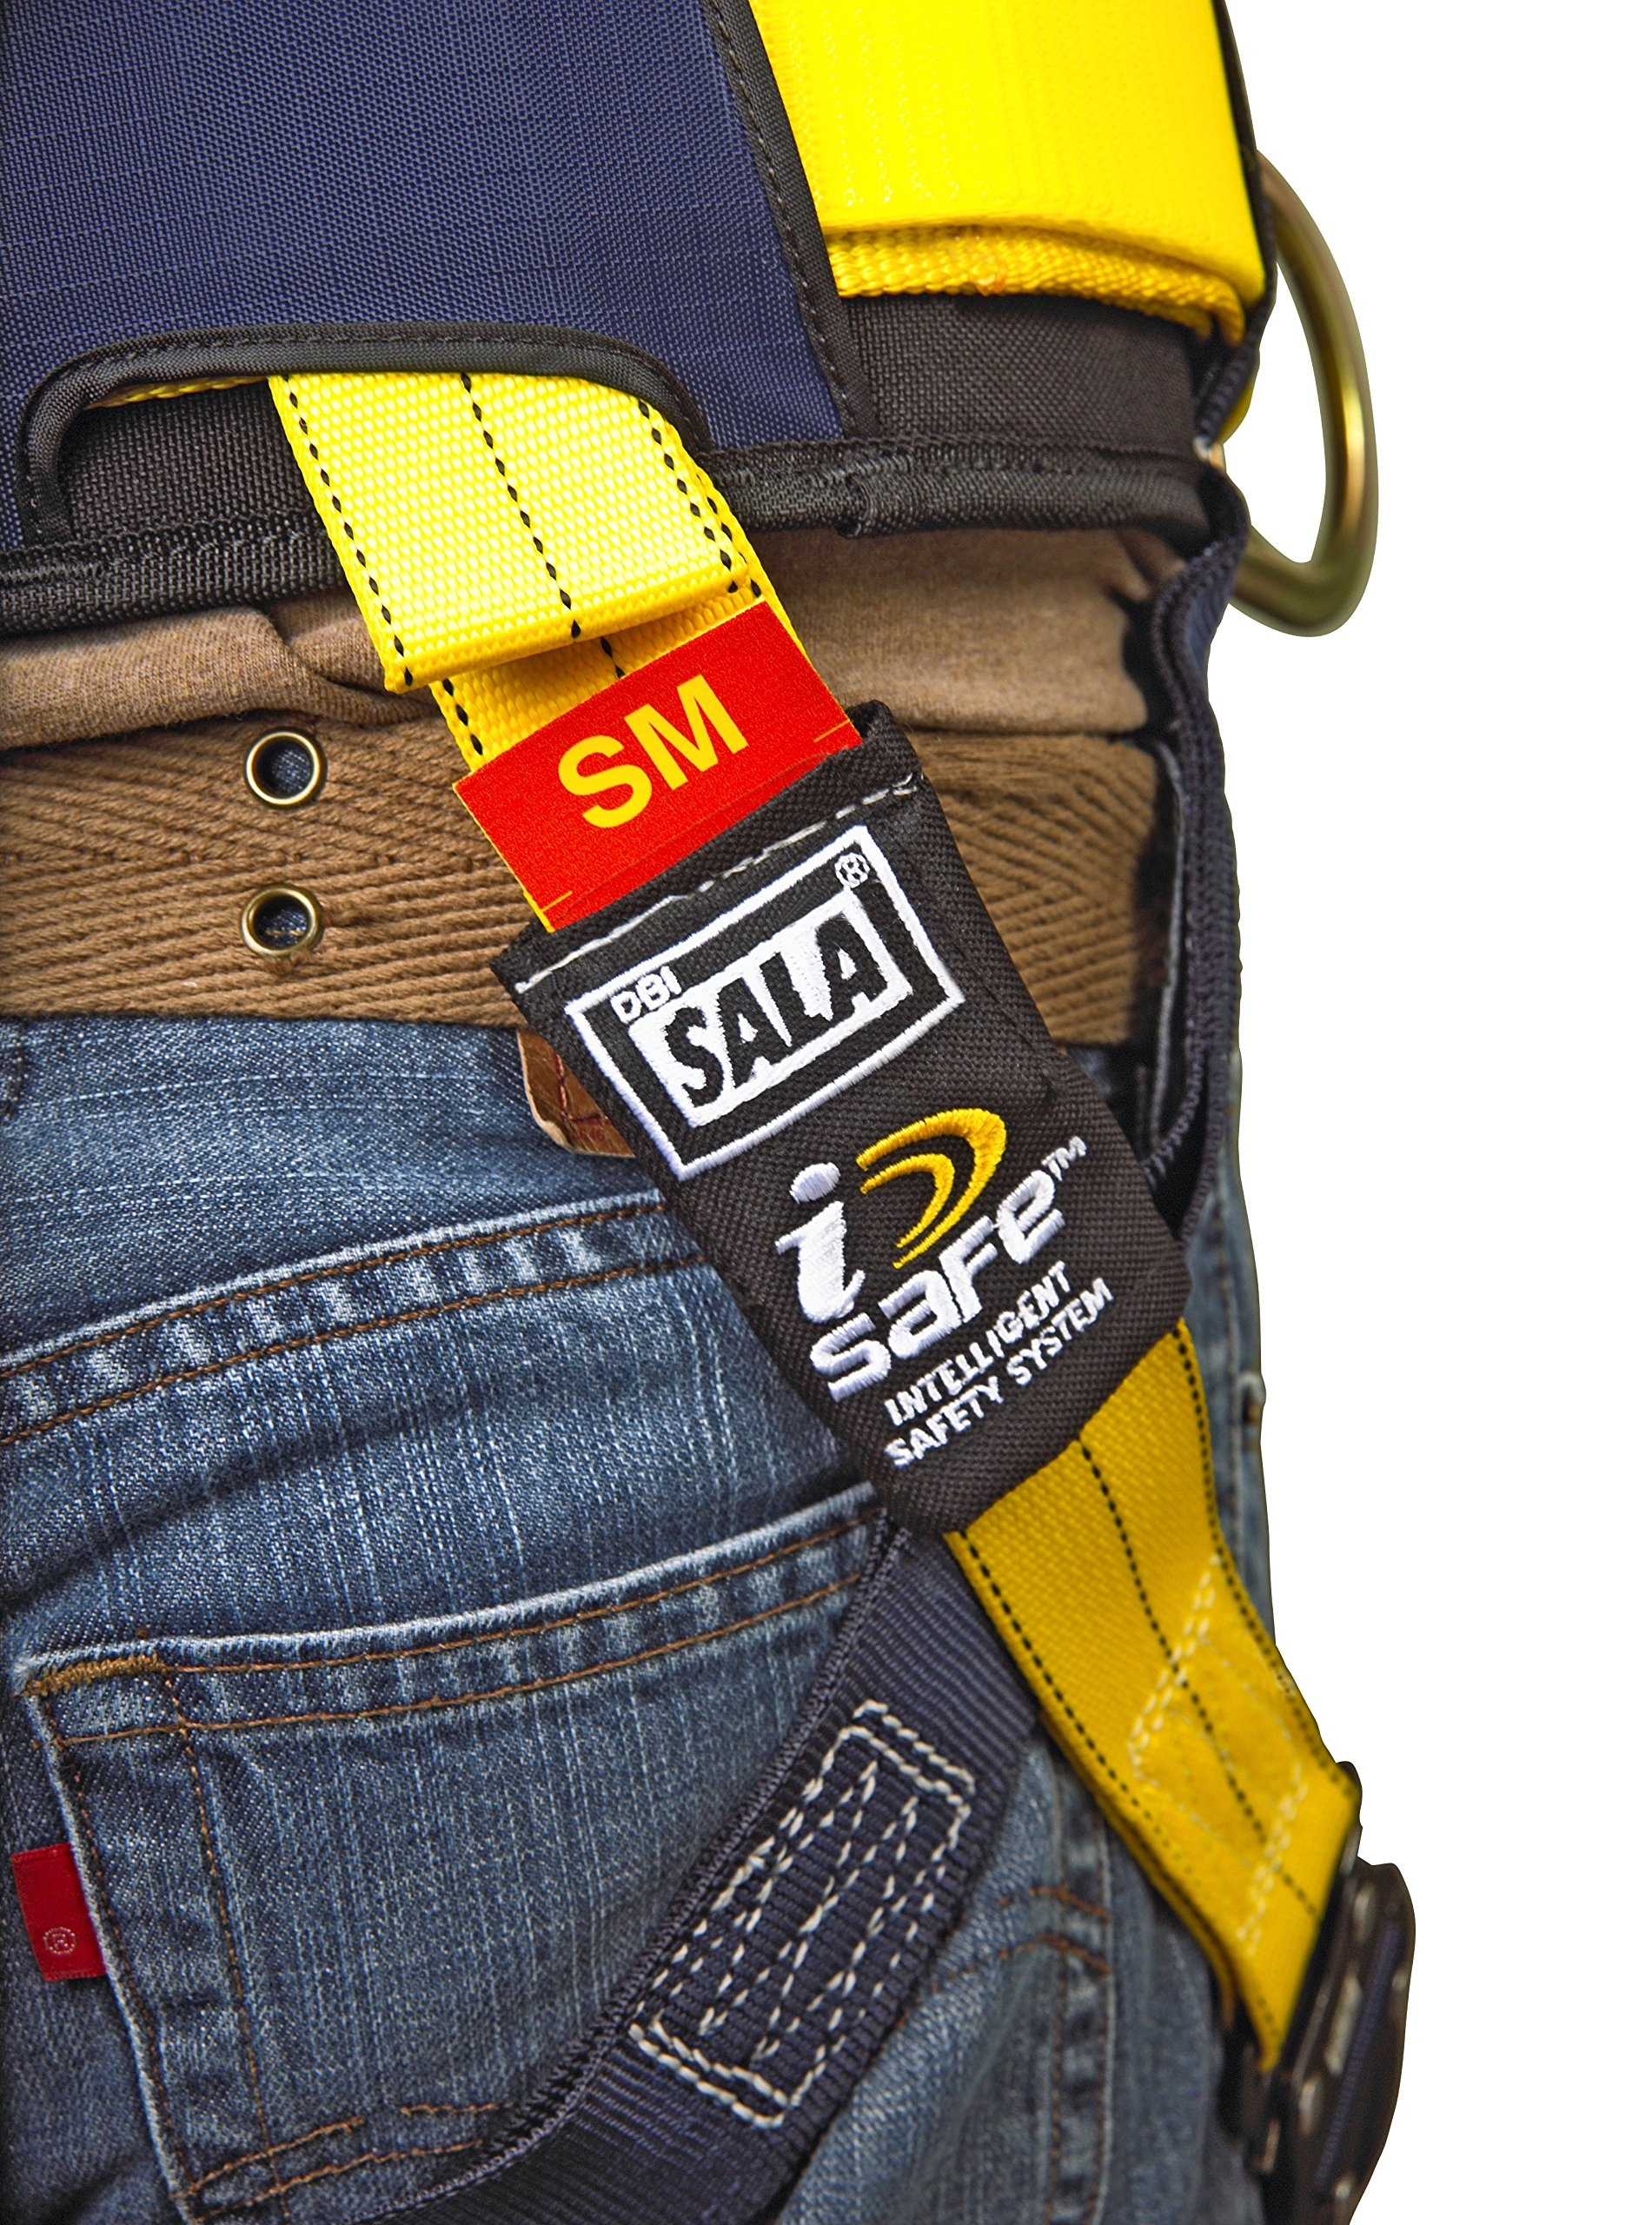 3M DBI-SALA Delta 1101654 Construction Harness, Back/Side D-Rings, Belt w/Sewn-In Back & Shoulder Pads, Tongue Buckle Leg Straps, Medium, Navy/Yellow by 3M Fall Protection Business (Image #7)